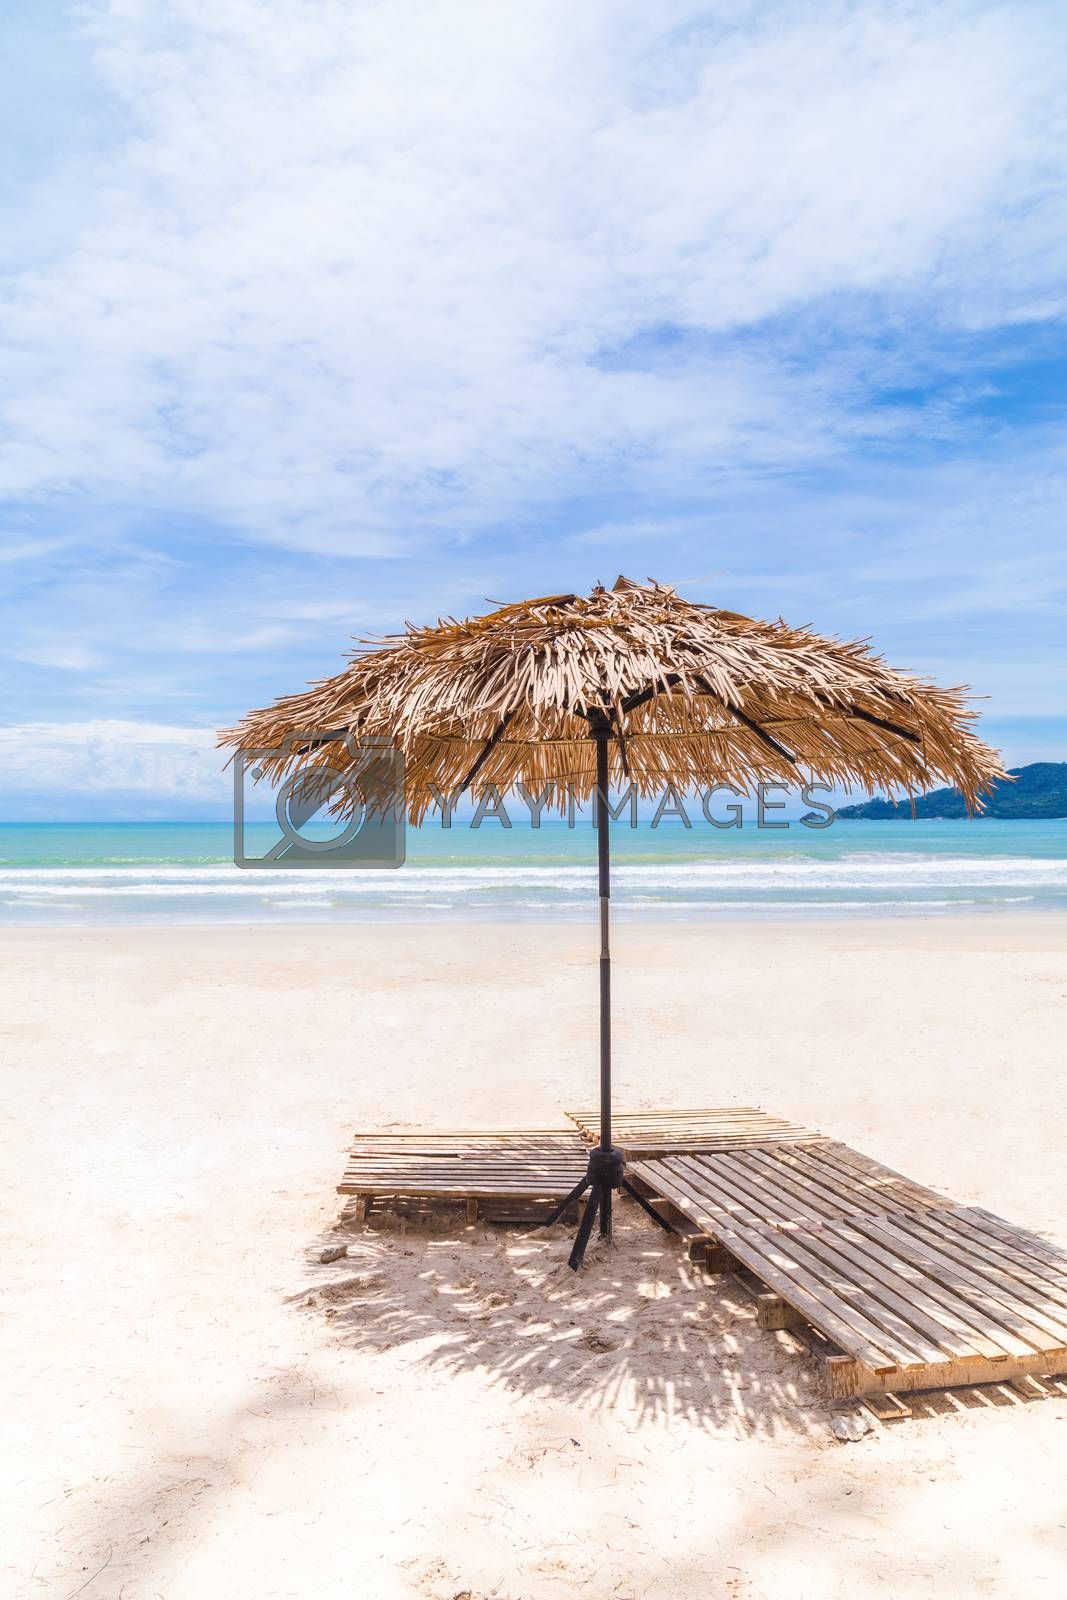 Beach Umbrella made of palm leafs on a perfect white beach in front of Sea in Phuket Isaland, Thailand.